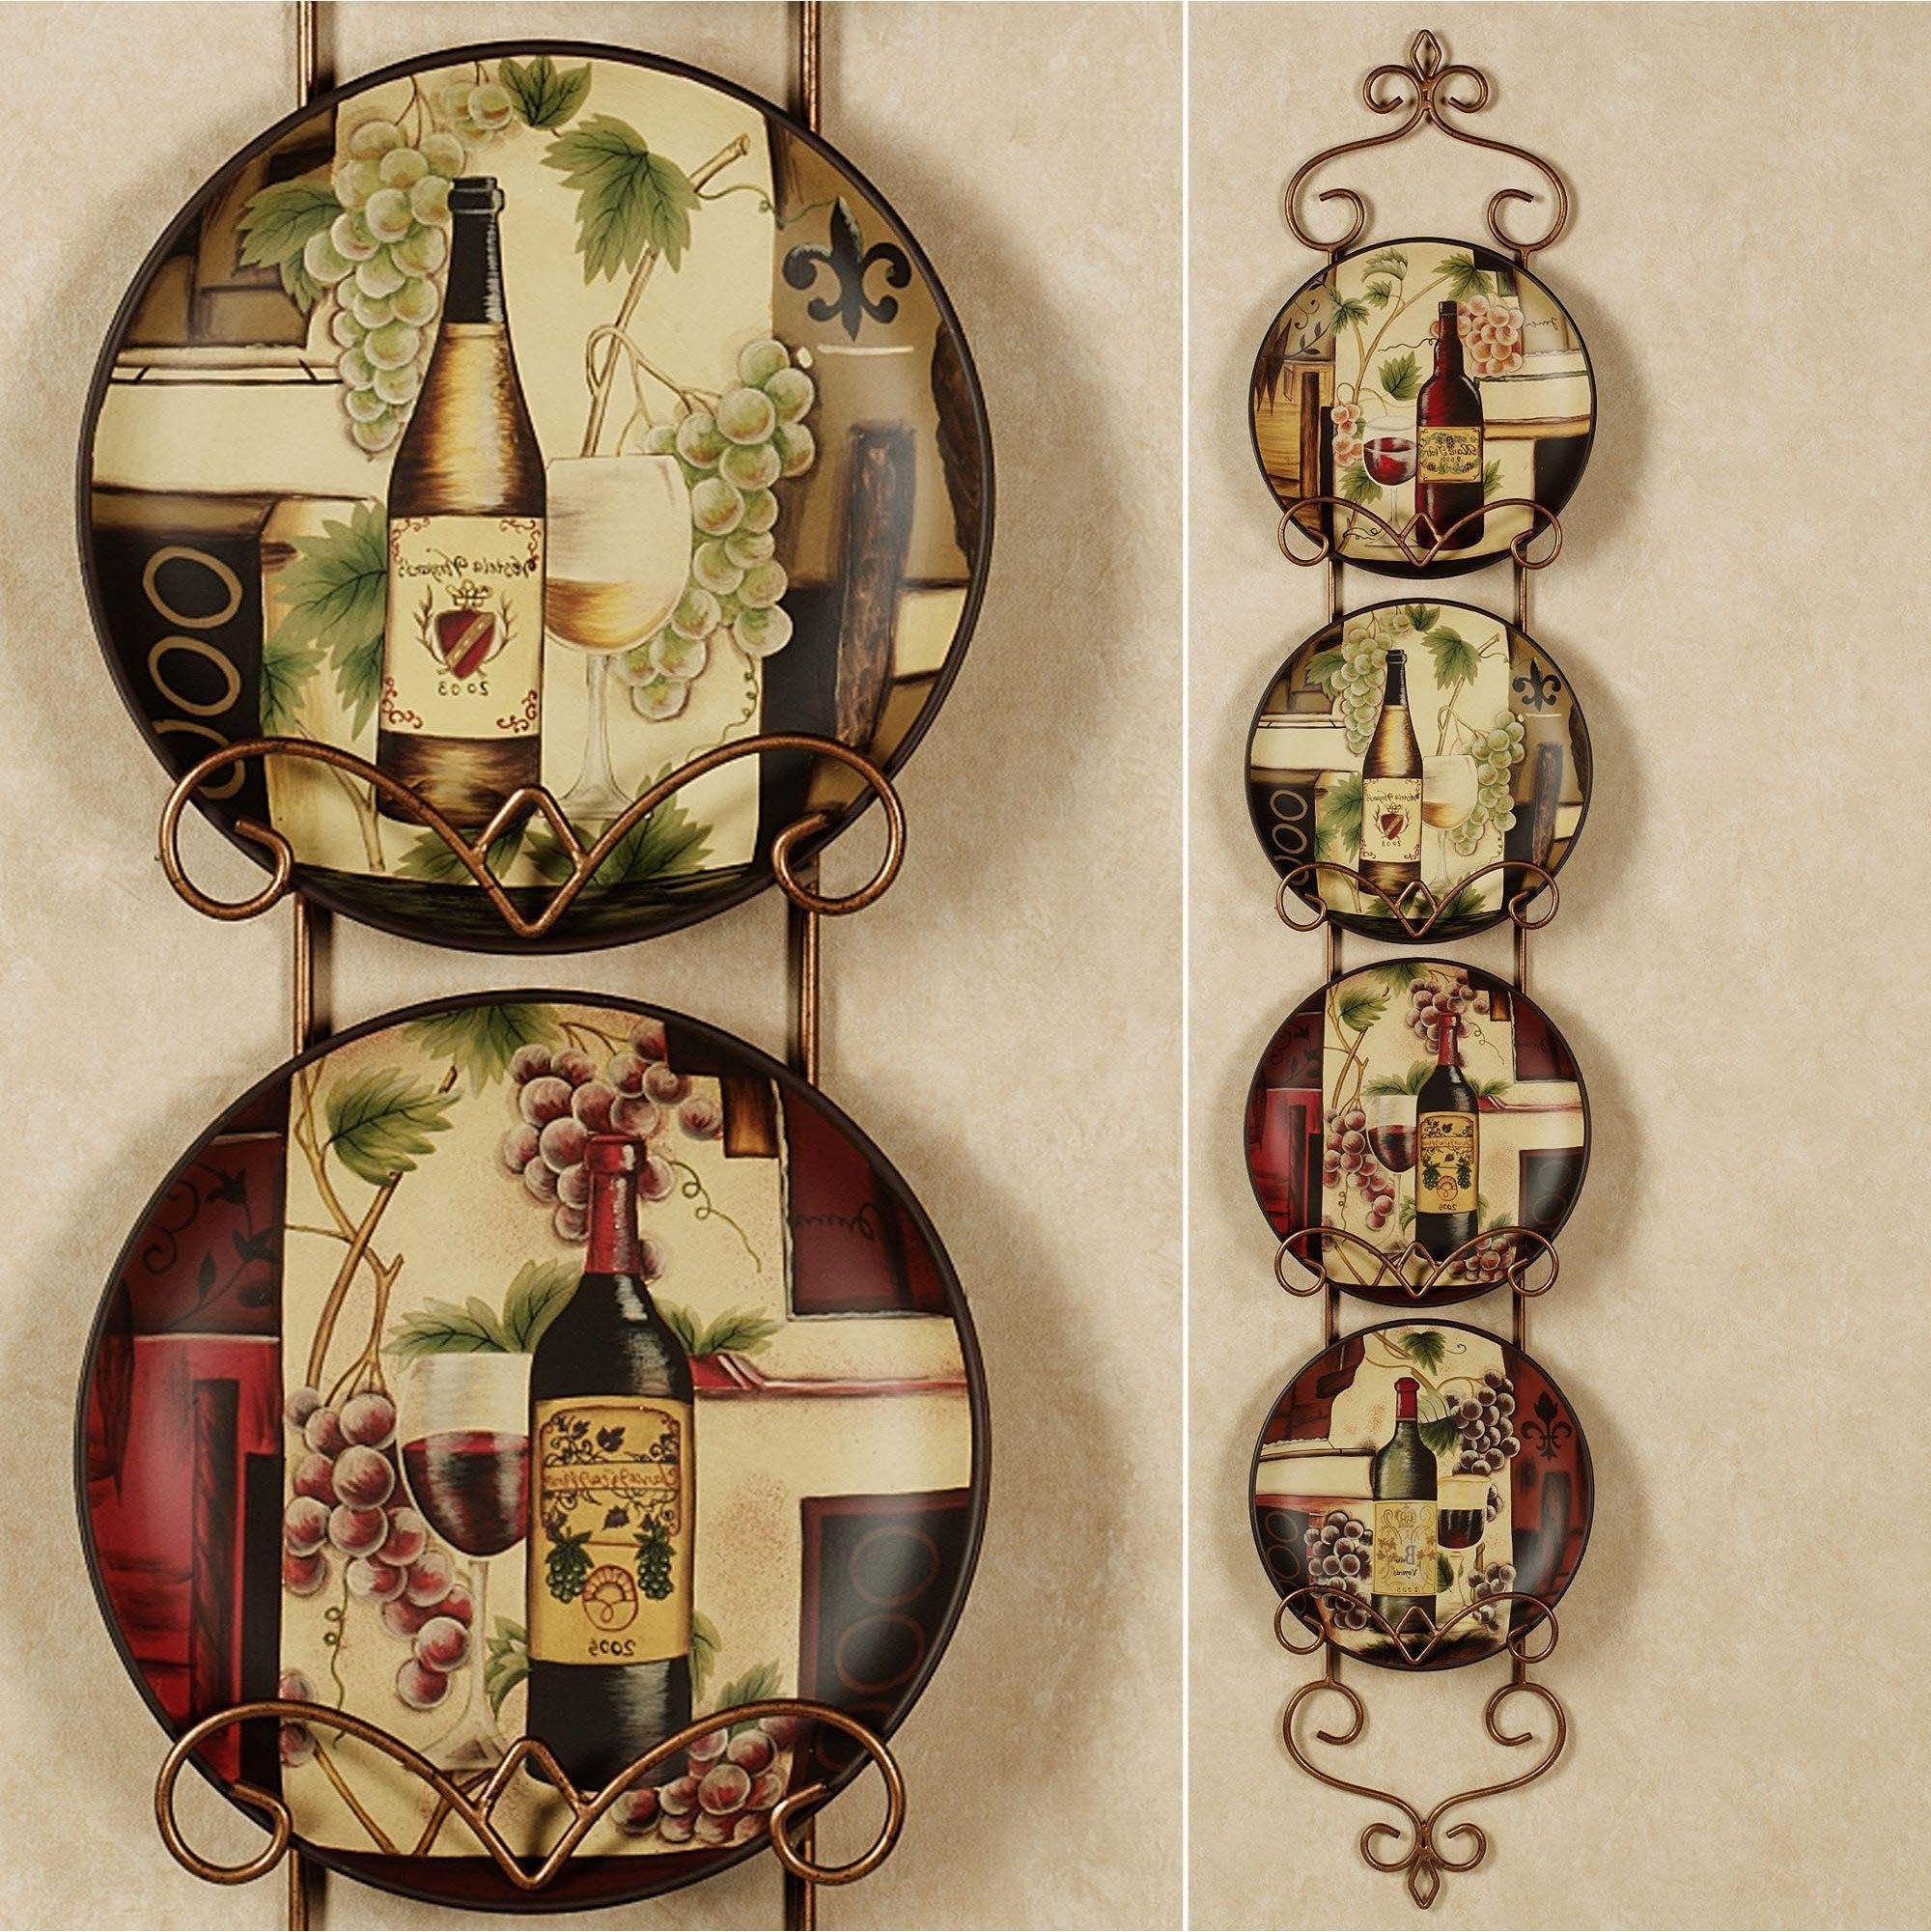 Decorative Plates For Wall Art | Best Decor Things With Decorative Plates For Wall Art (Image 7 of 20)